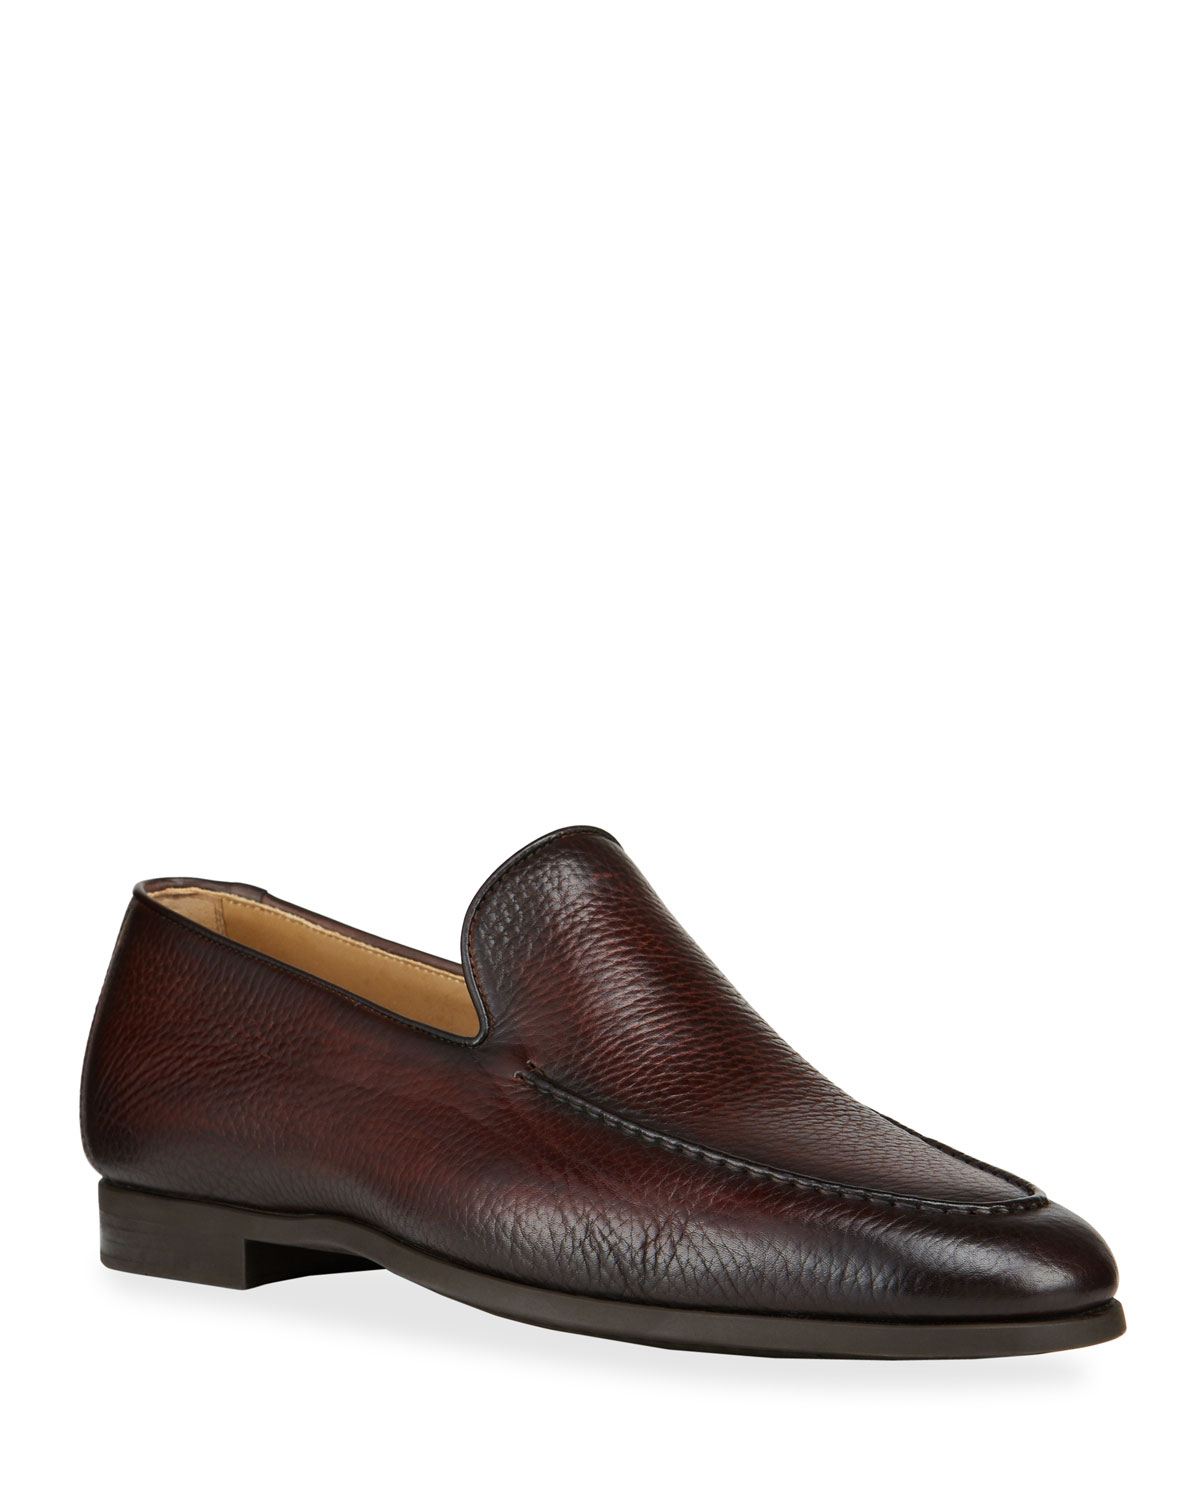 Magnanni MEN'S VENETIAN TEXTURED LEATHER LOAFERS